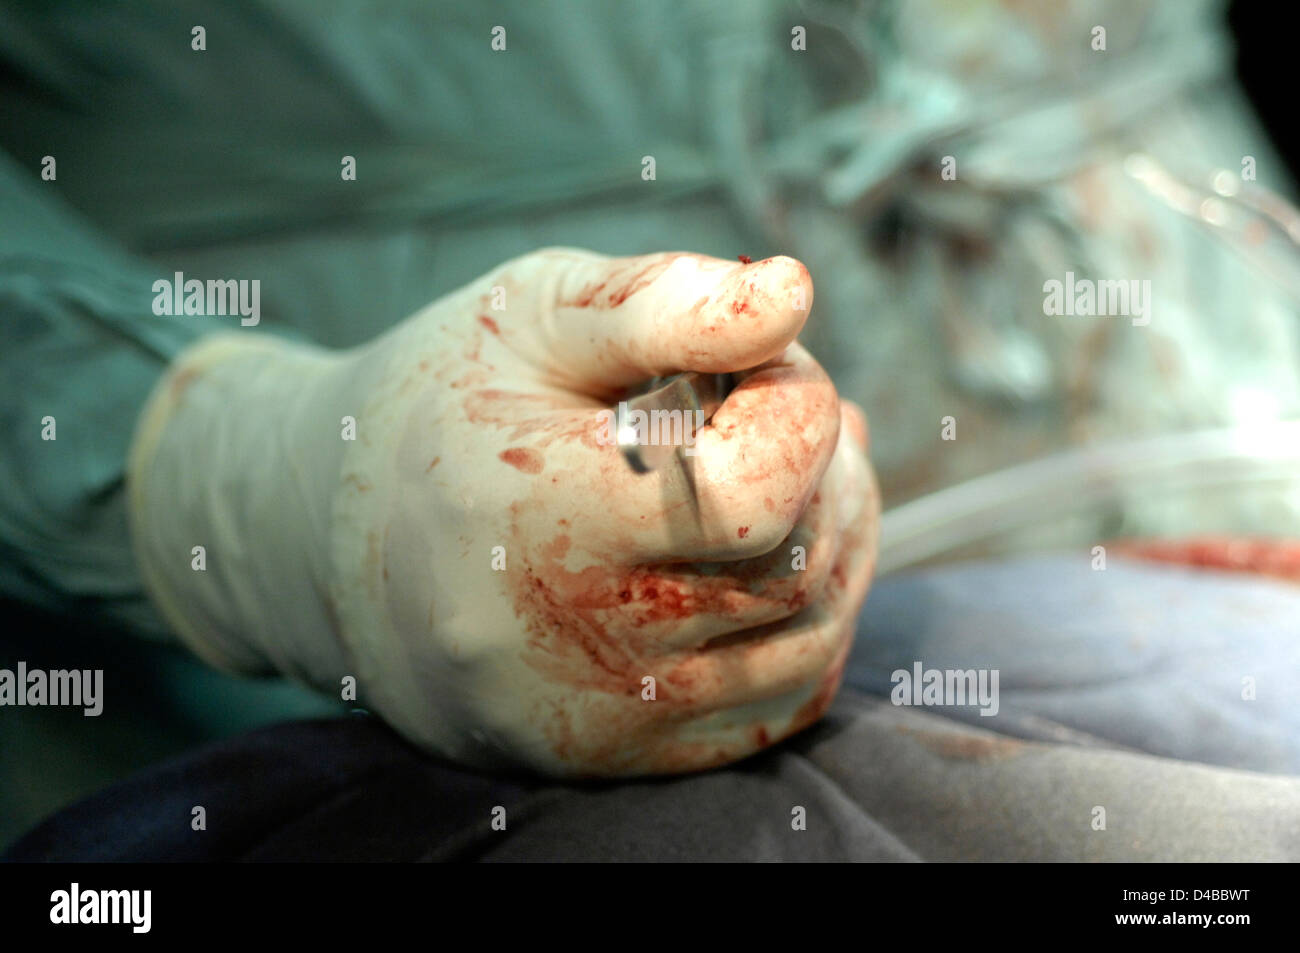 Gloved hand holding a scalpel. Sudan, Africa. - Stock Image